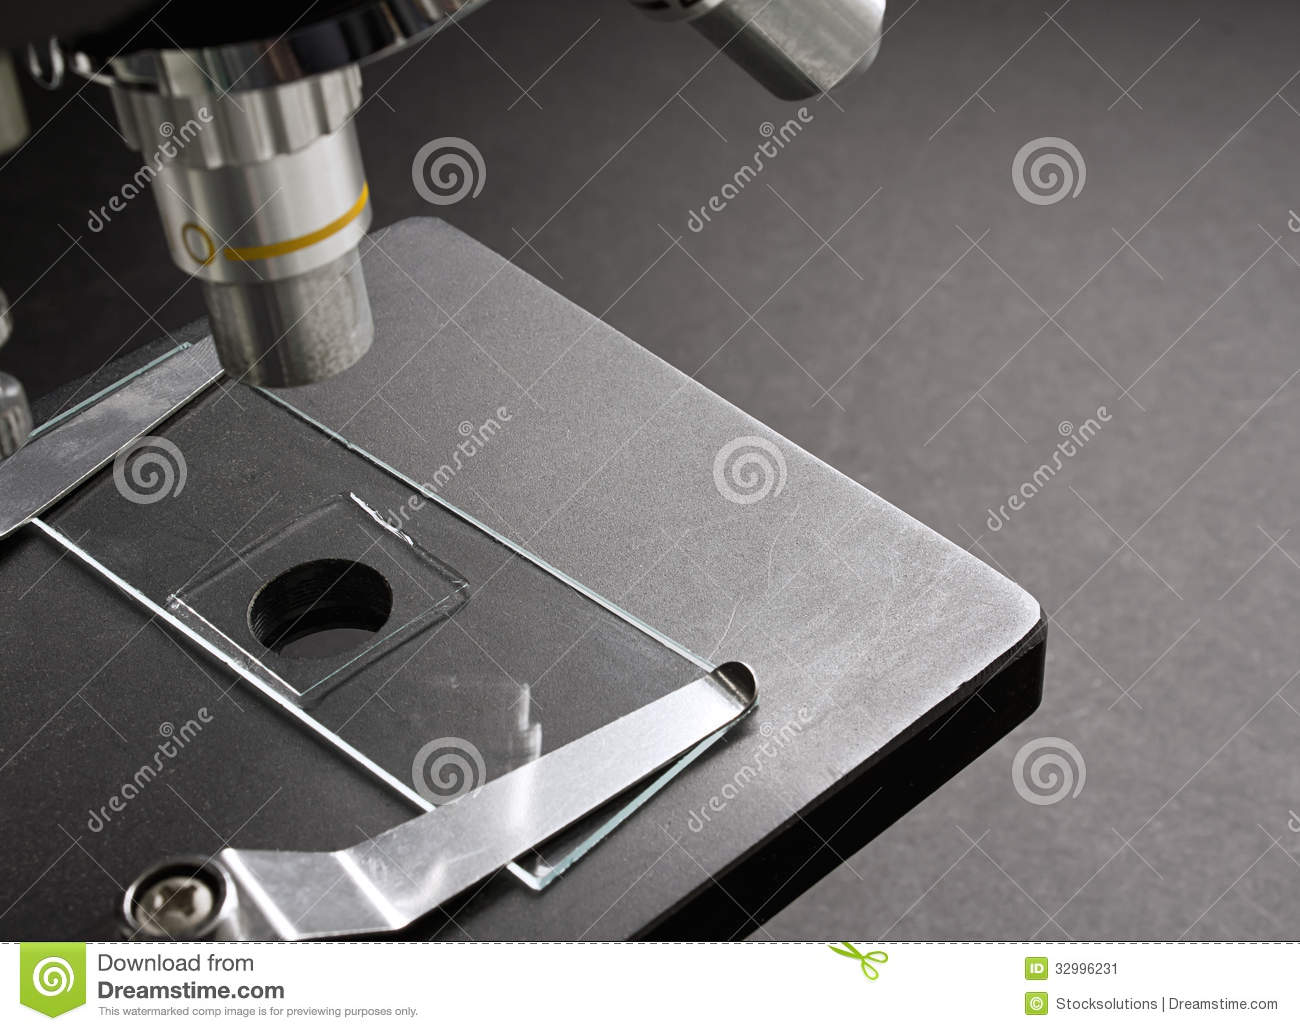 mounted slide on microscope stock image image of magnification